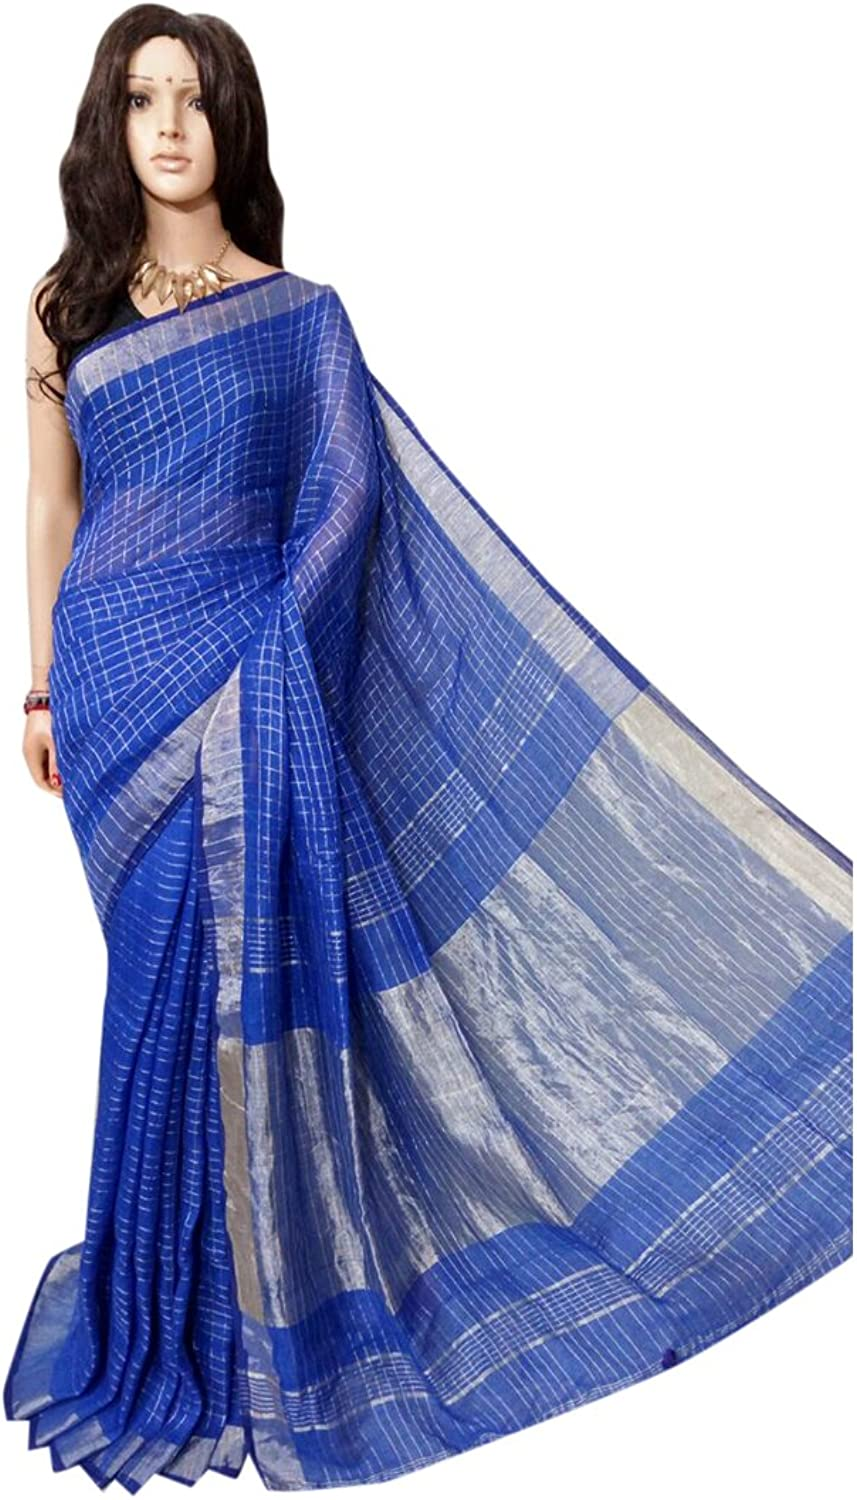 Linen by linen 80 count Saree Full weaving work by weavers traditional handoom Bengal Women sari Indian Ethnic Festive saree 108 9